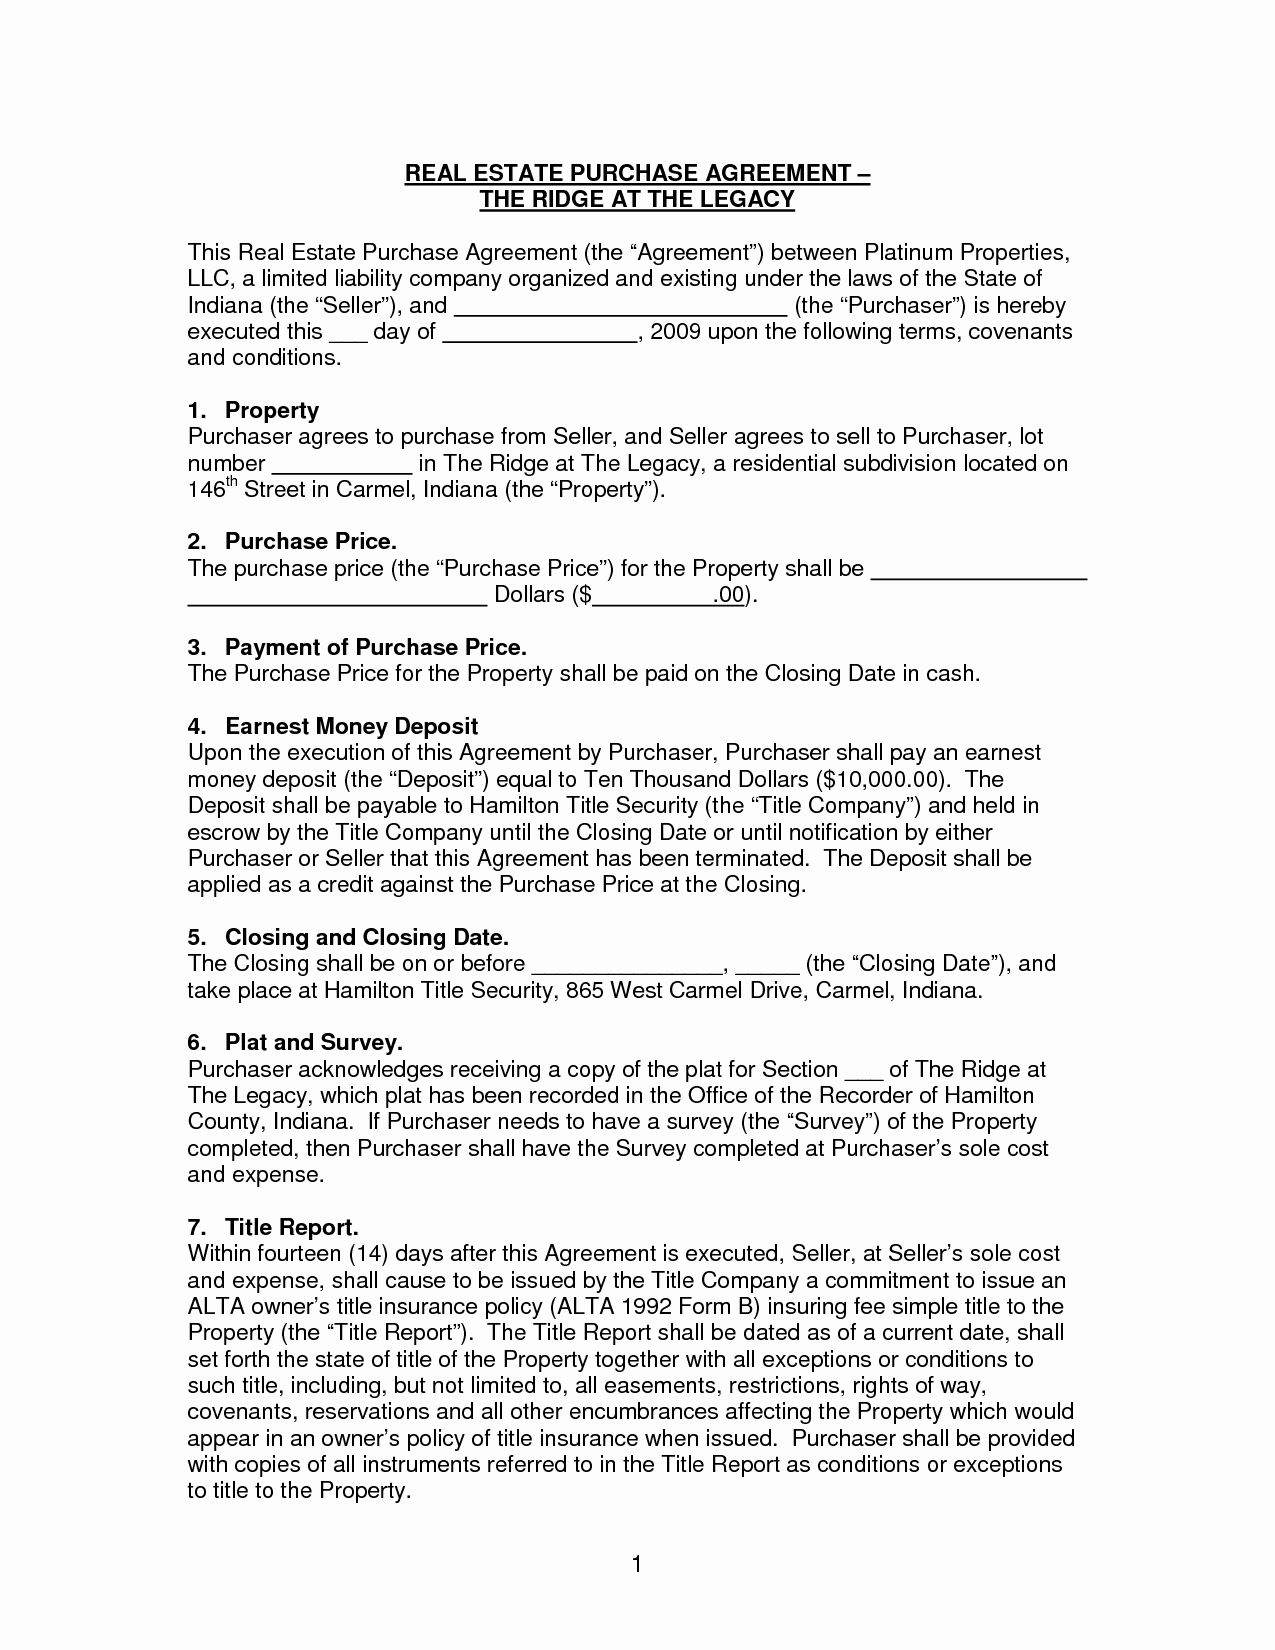 Simple Real Estate Contract Lovely Your Blog Dunnfxpouzrplo In 2020 Real Estate Contract Contract Template Purchase Agreement